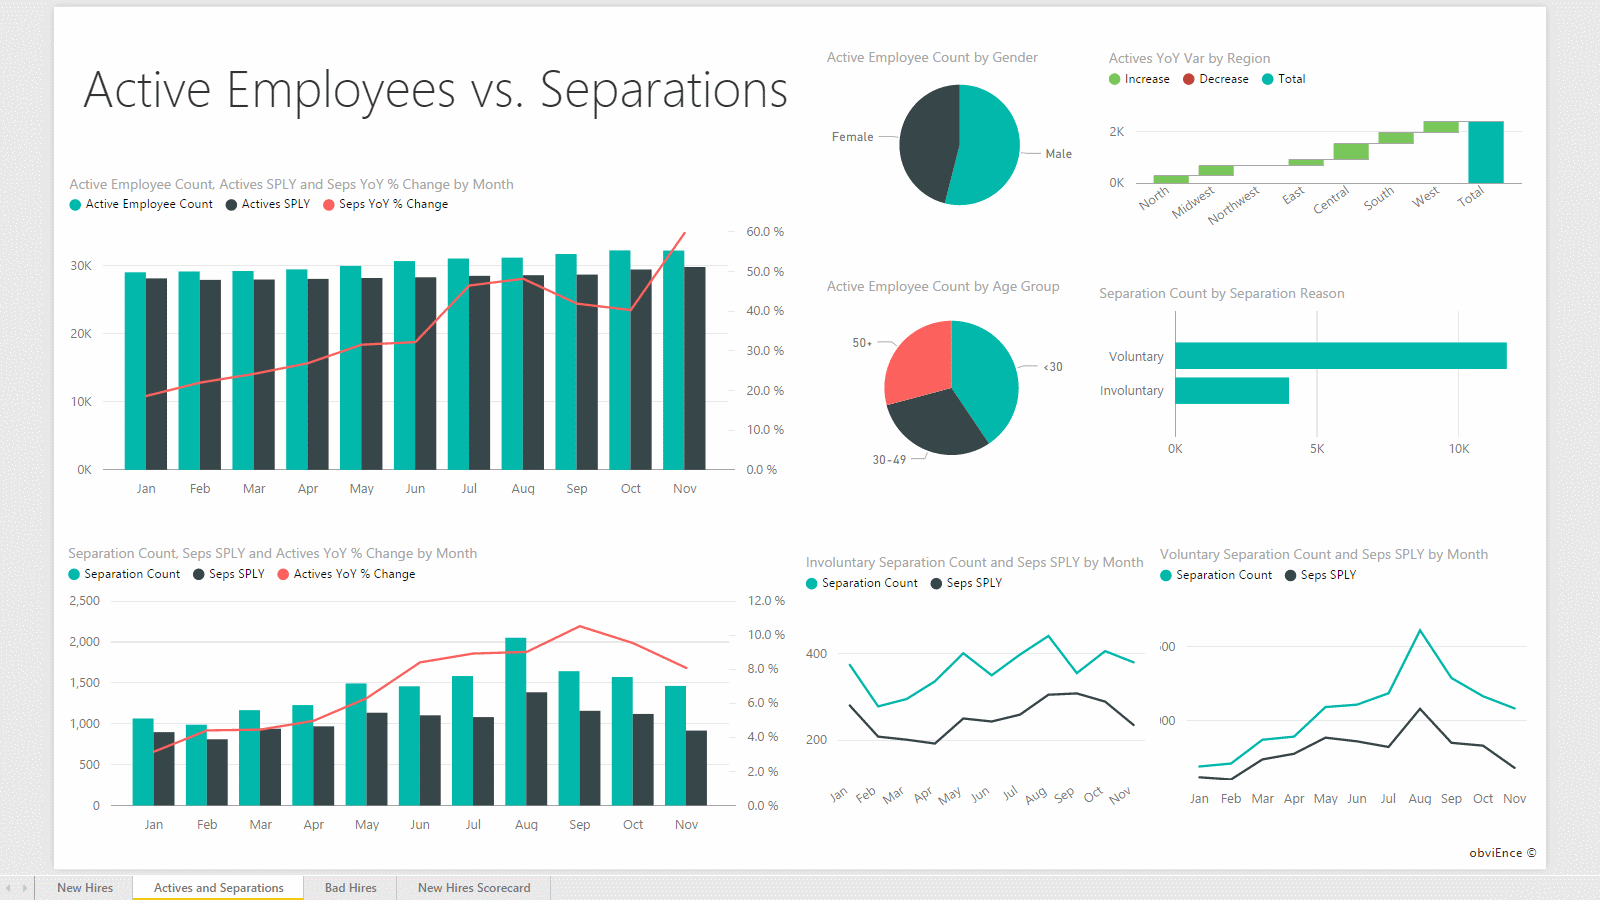 Report: Actives and Separations